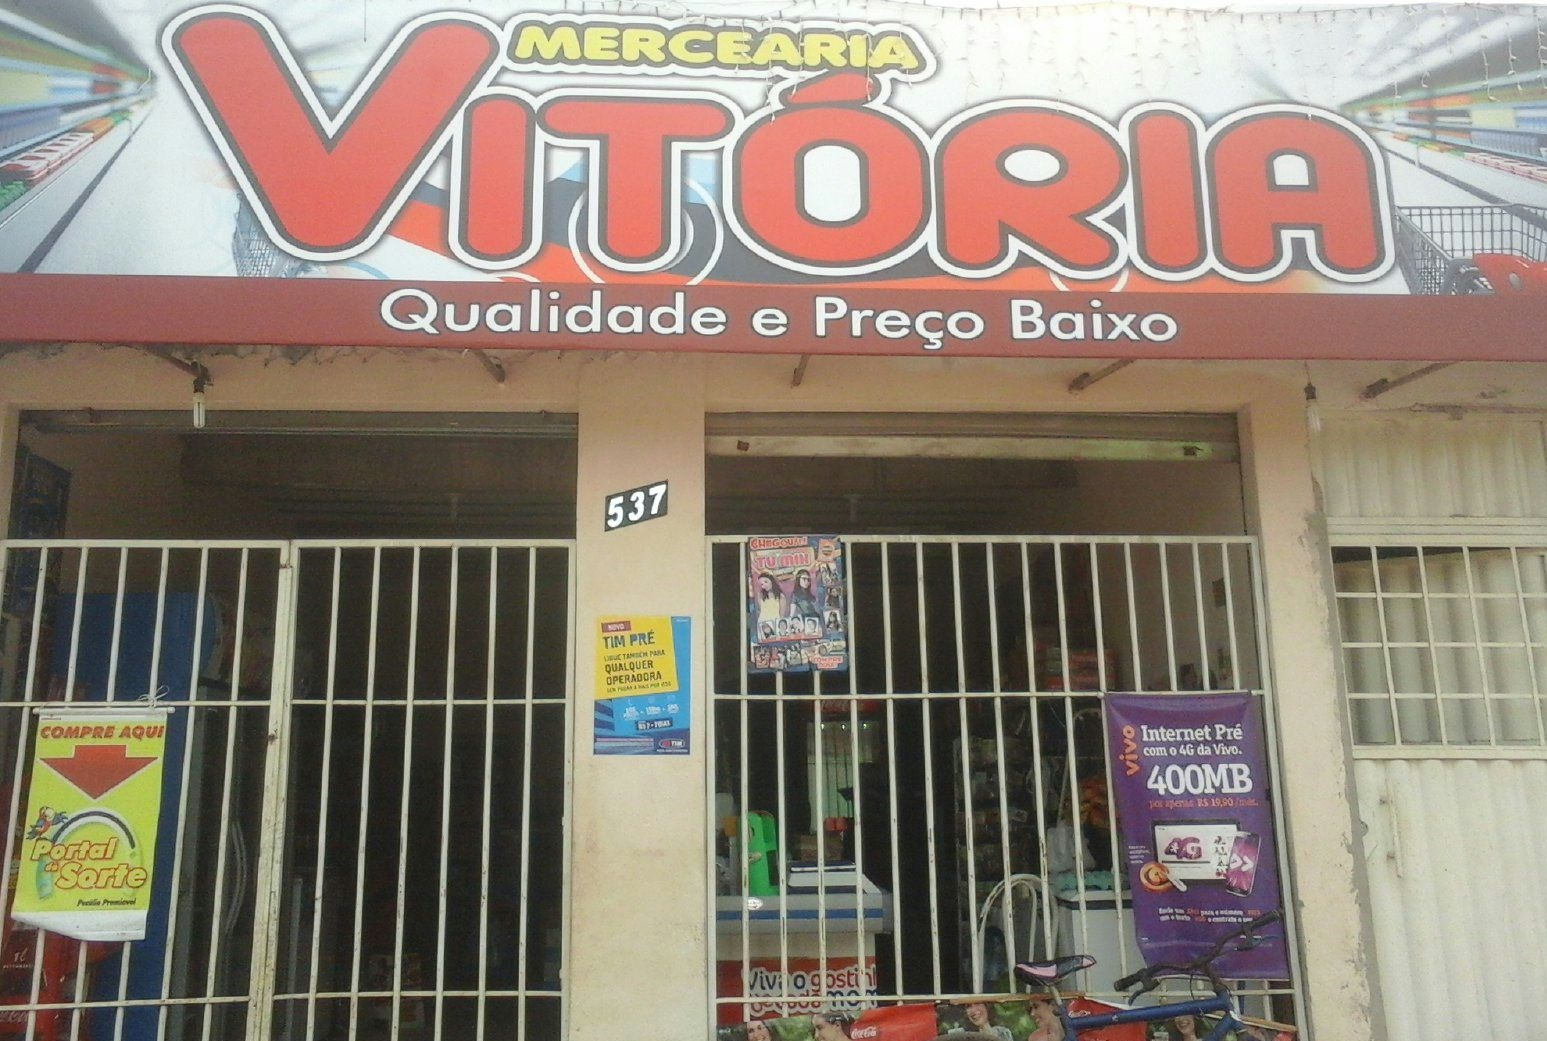 MERCEARIA VITÓRIA